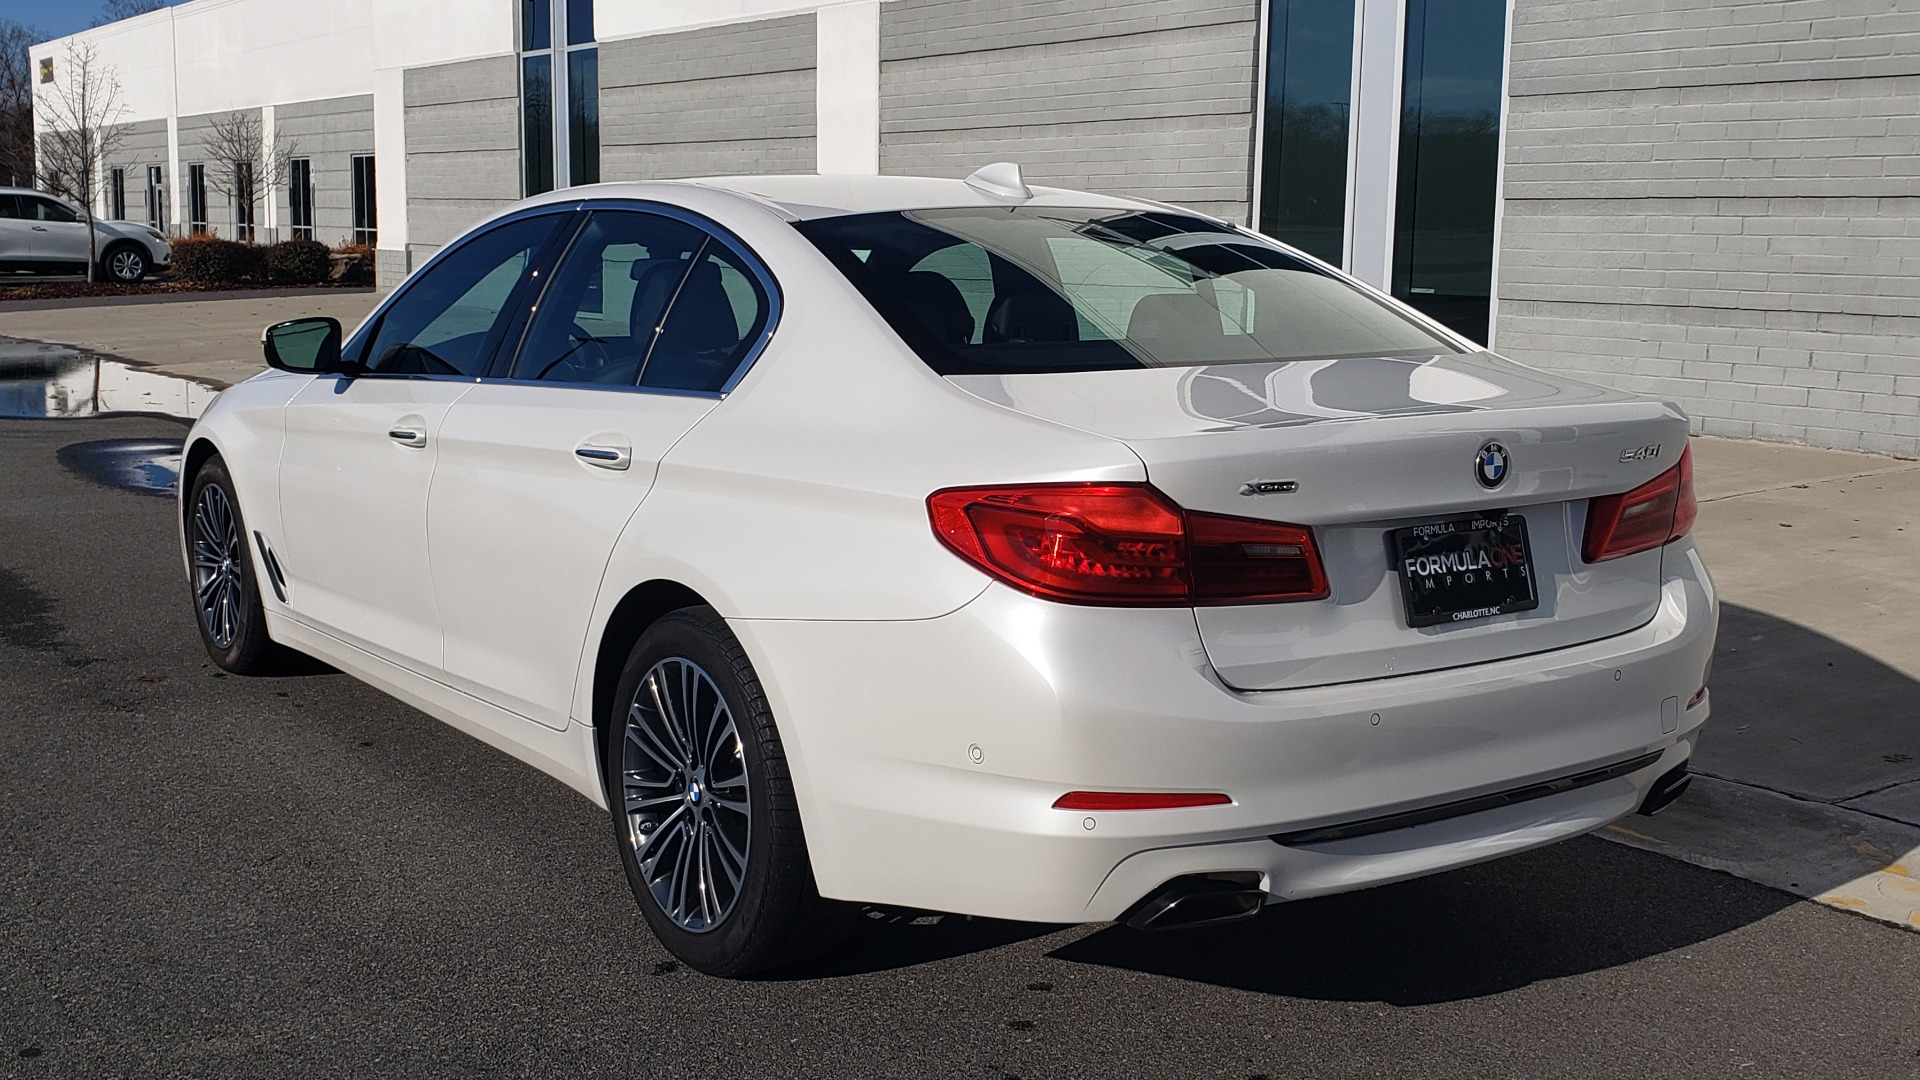 Used 2017 BMW 5 SERIES 540I XDRIVE PREMIUM / NAV / DRVR ASST / CLD WTHR / REARVIEW for sale $34,995 at Formula Imports in Charlotte NC 28227 4